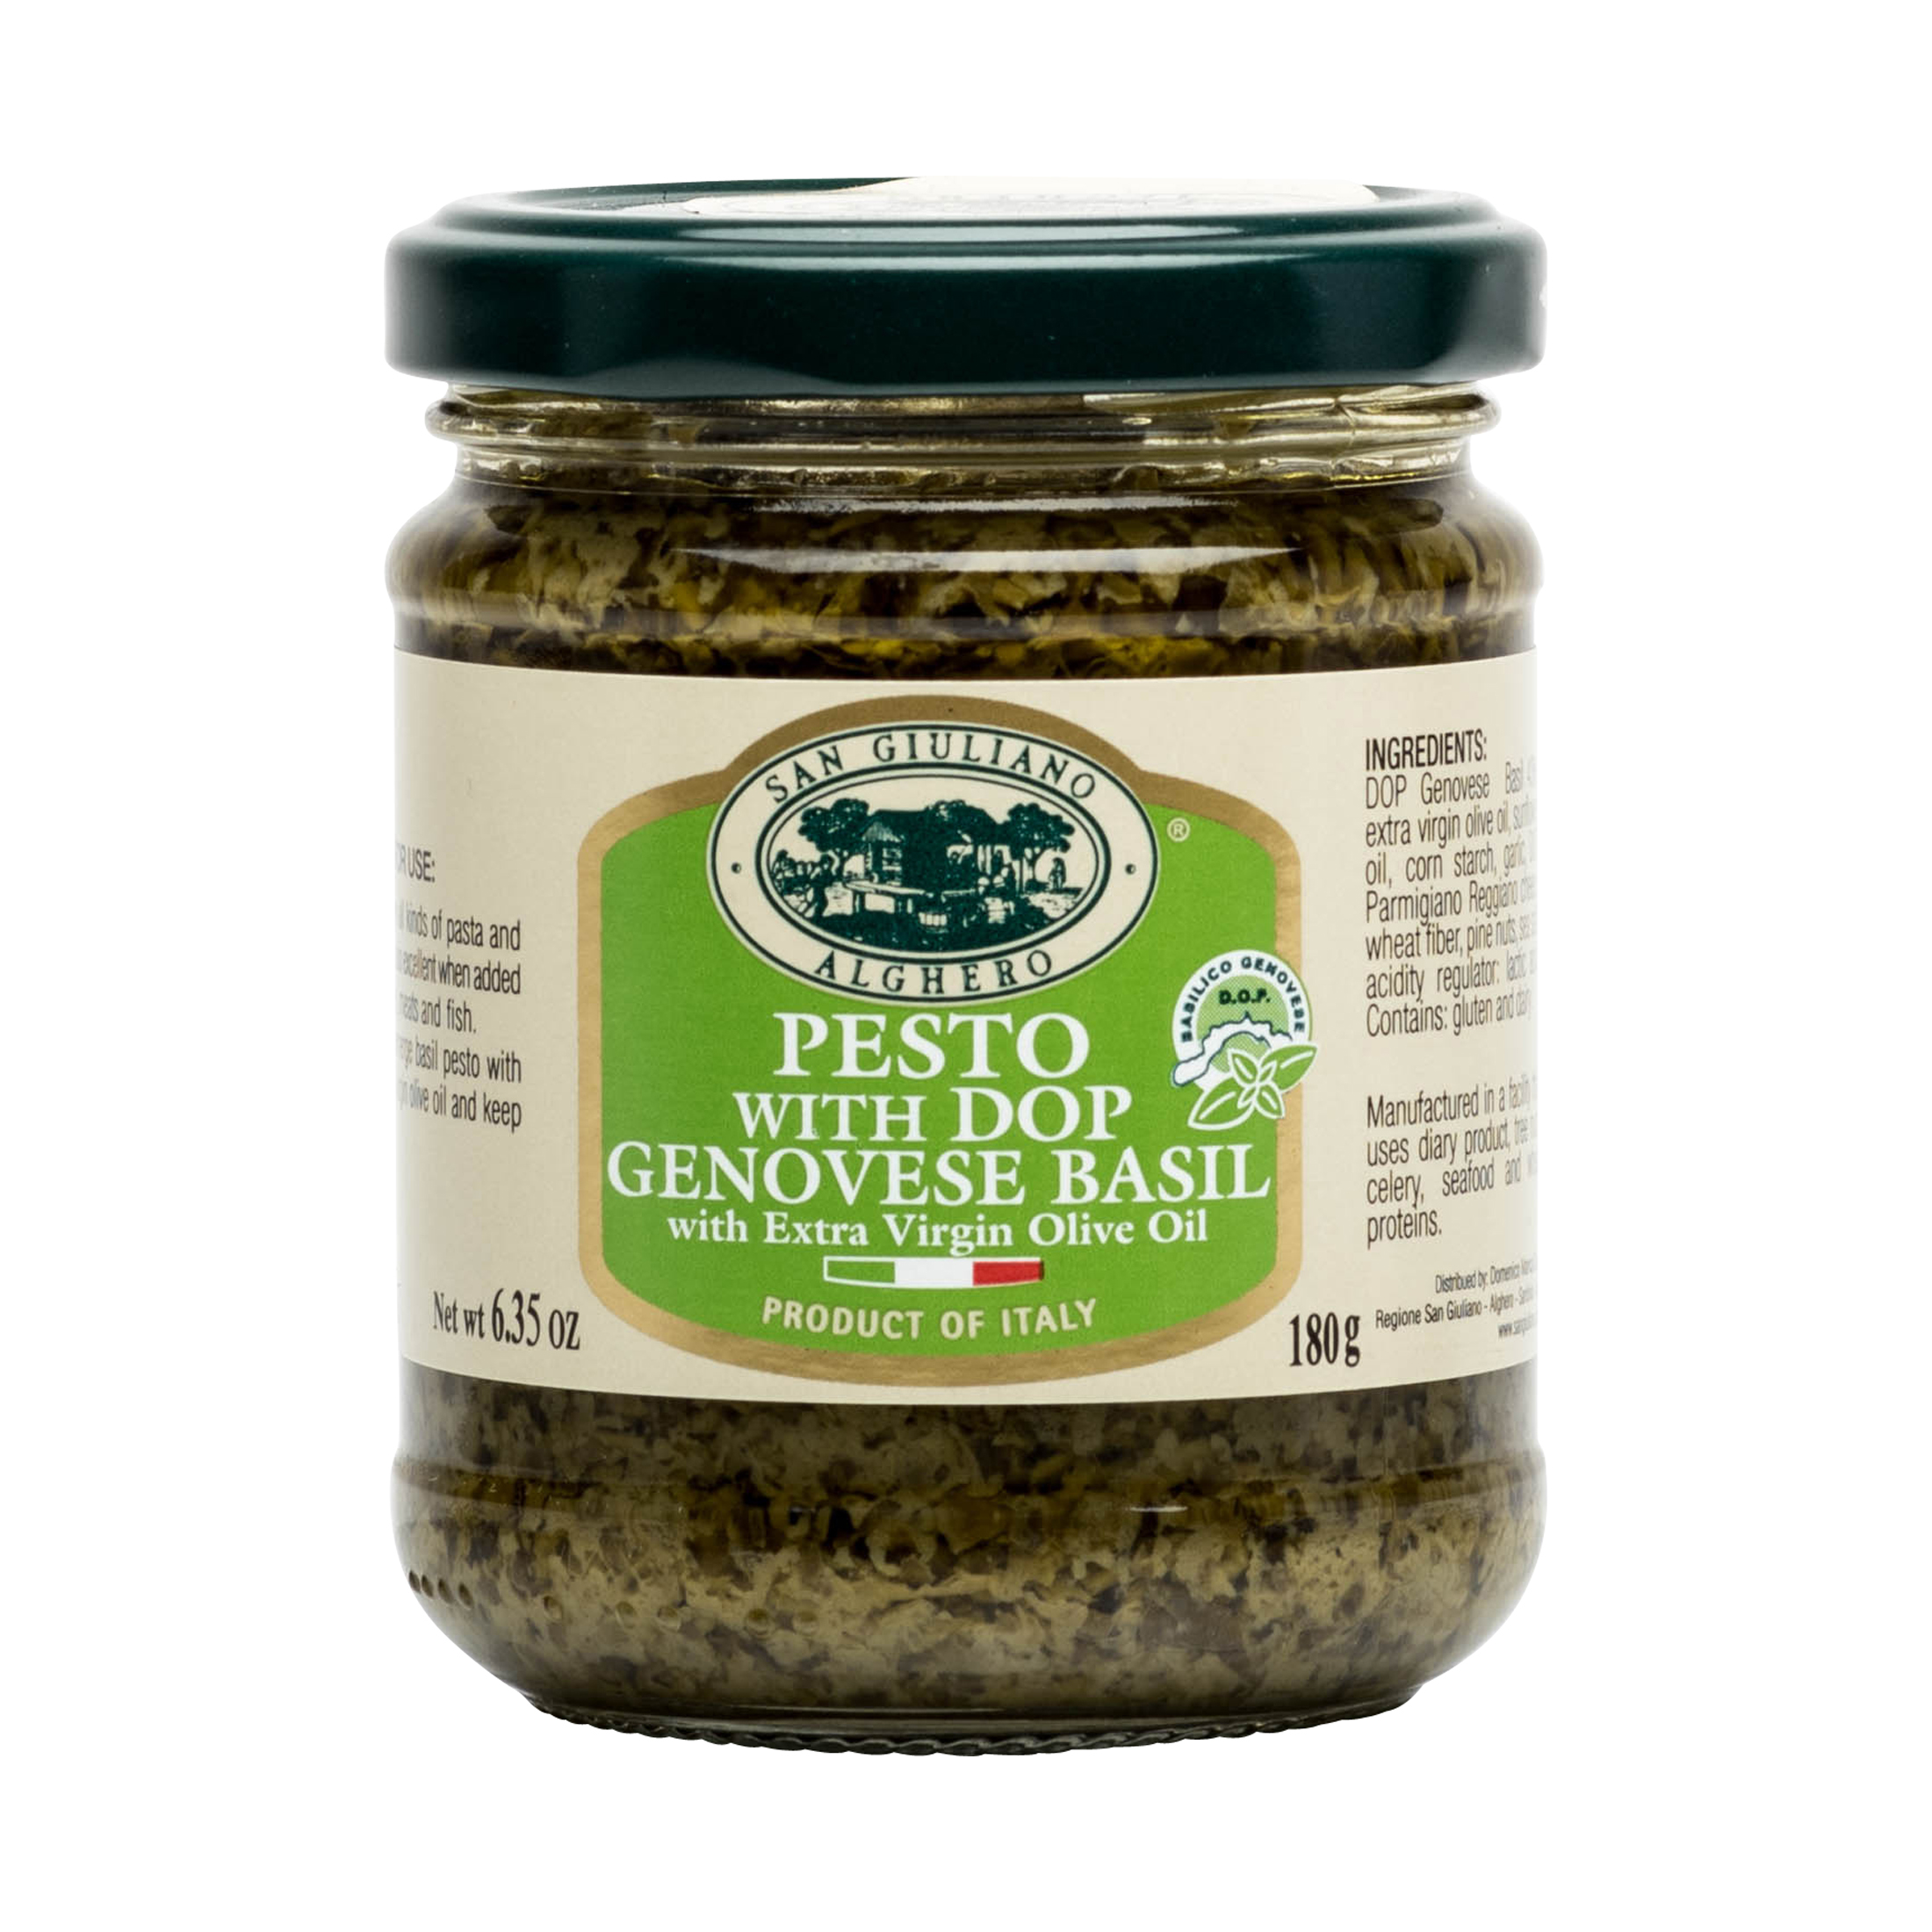 PESTO WITH D.O.P. GENOVESE BASIL